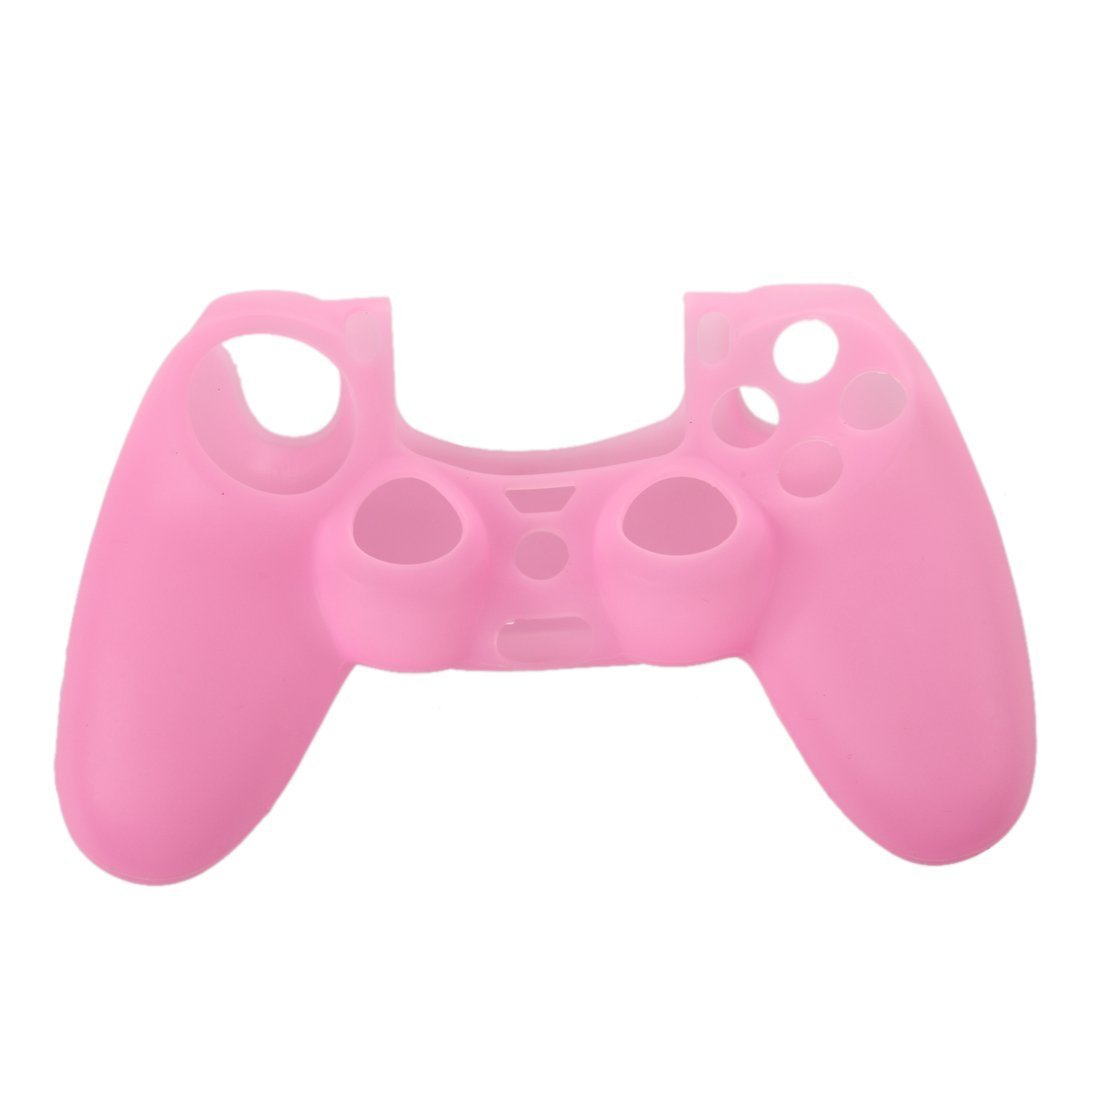 SODIAL (R)Housse Etui Coque En Silicone Rose Pour Manette Console Playstation 4 PS4 product image